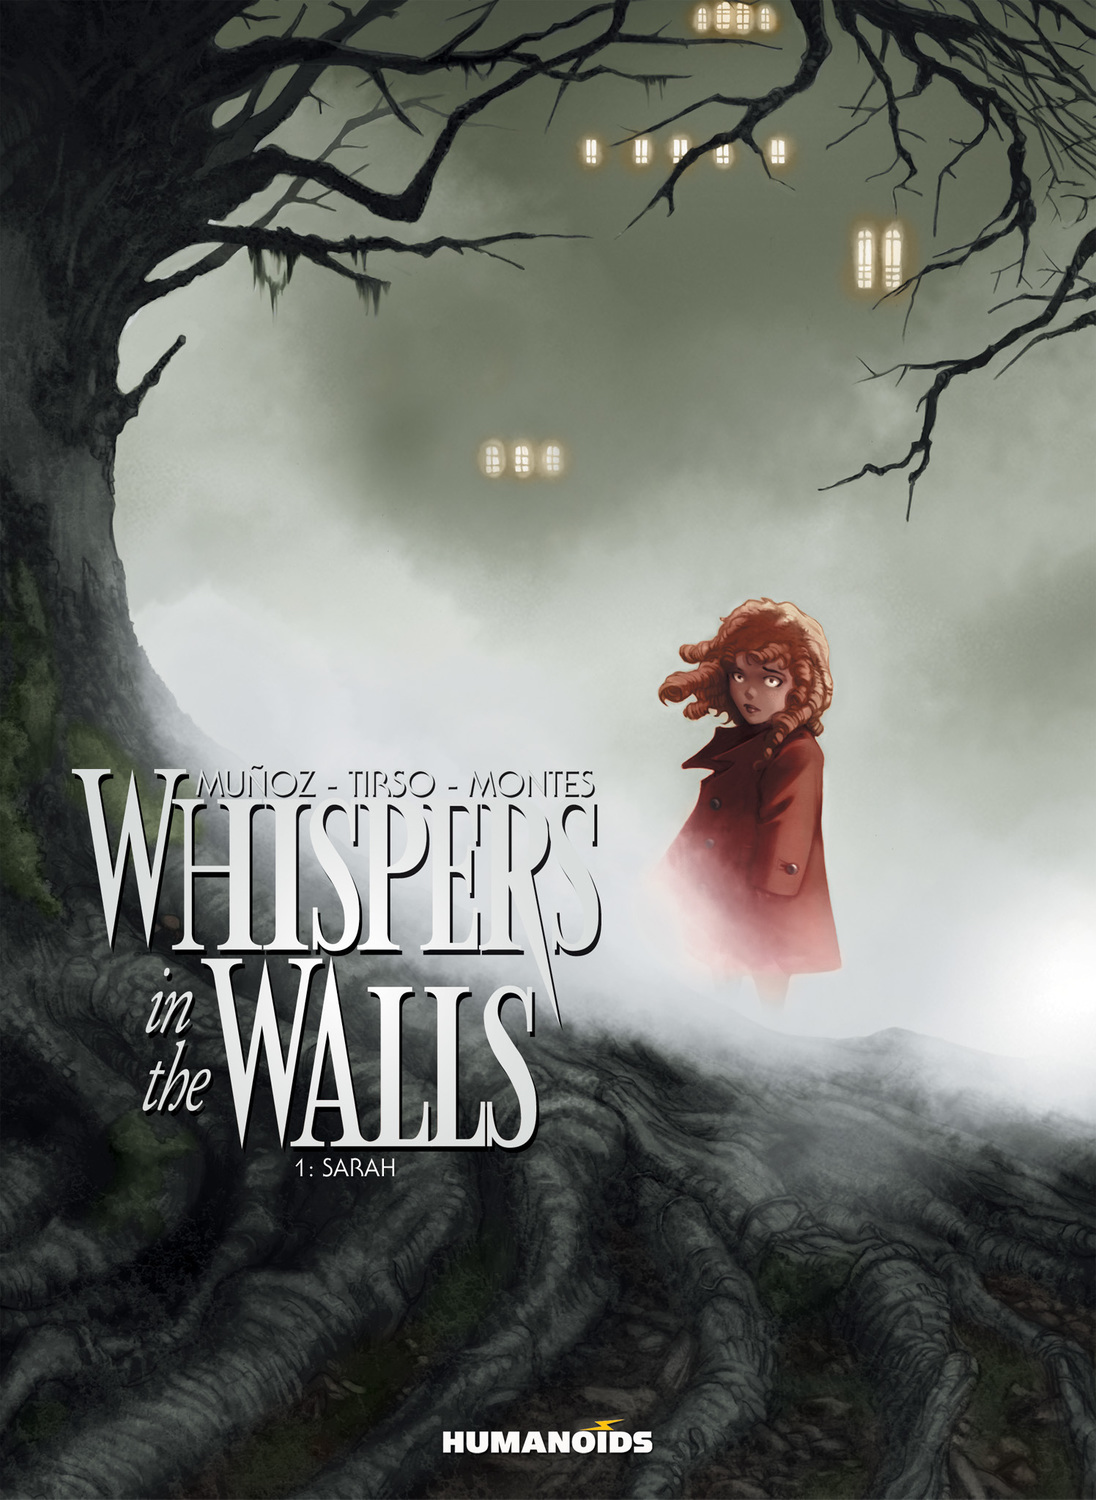 Whispers In The Walls #1 : Sarah - Digital Comic